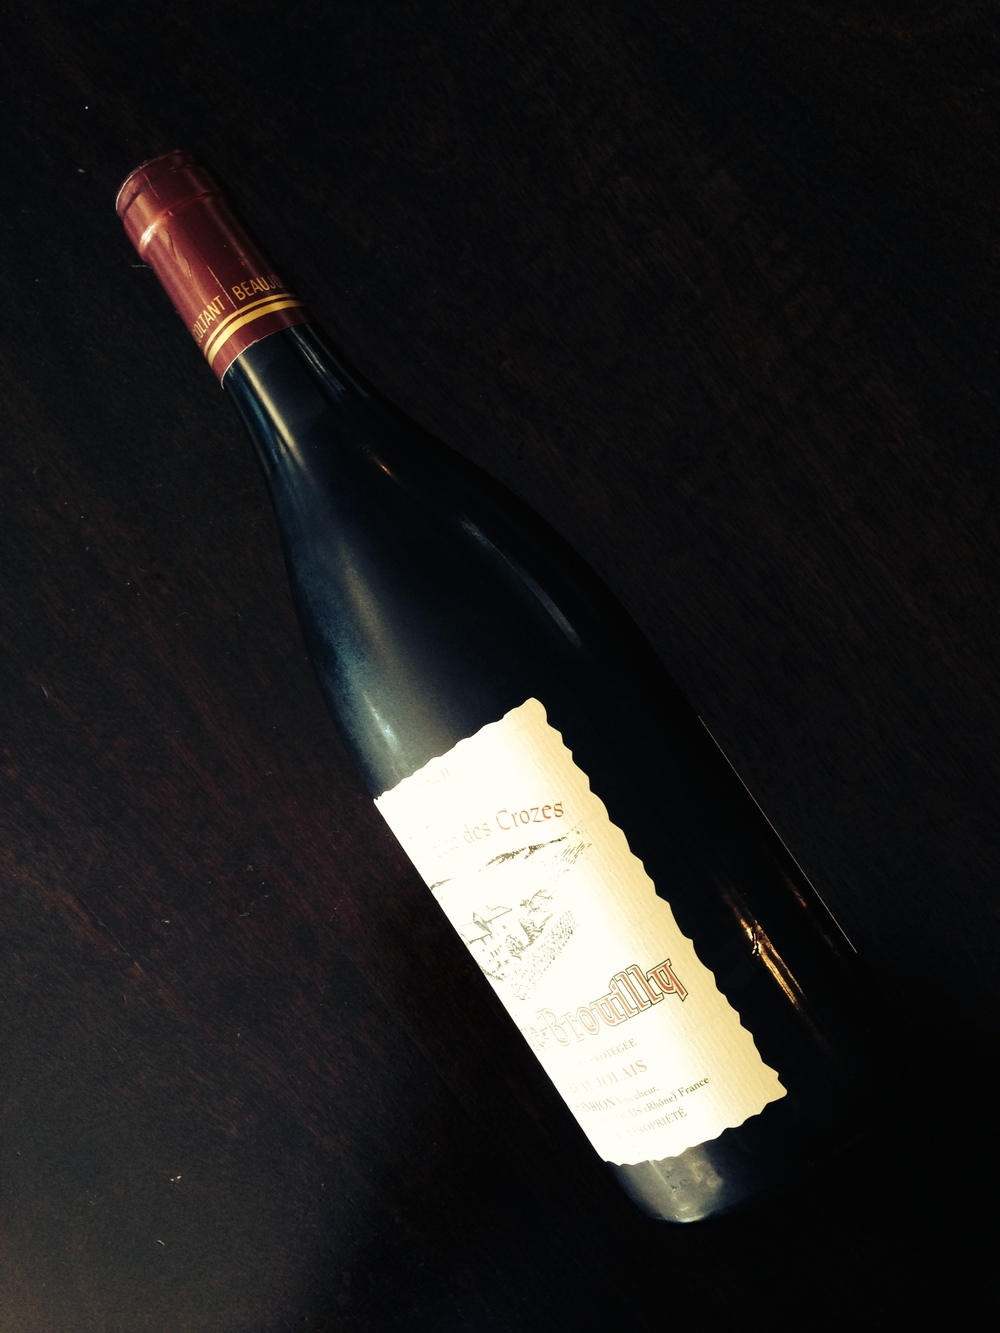 This Cote de Brouilly could go either way--chilled or cellar temperature.